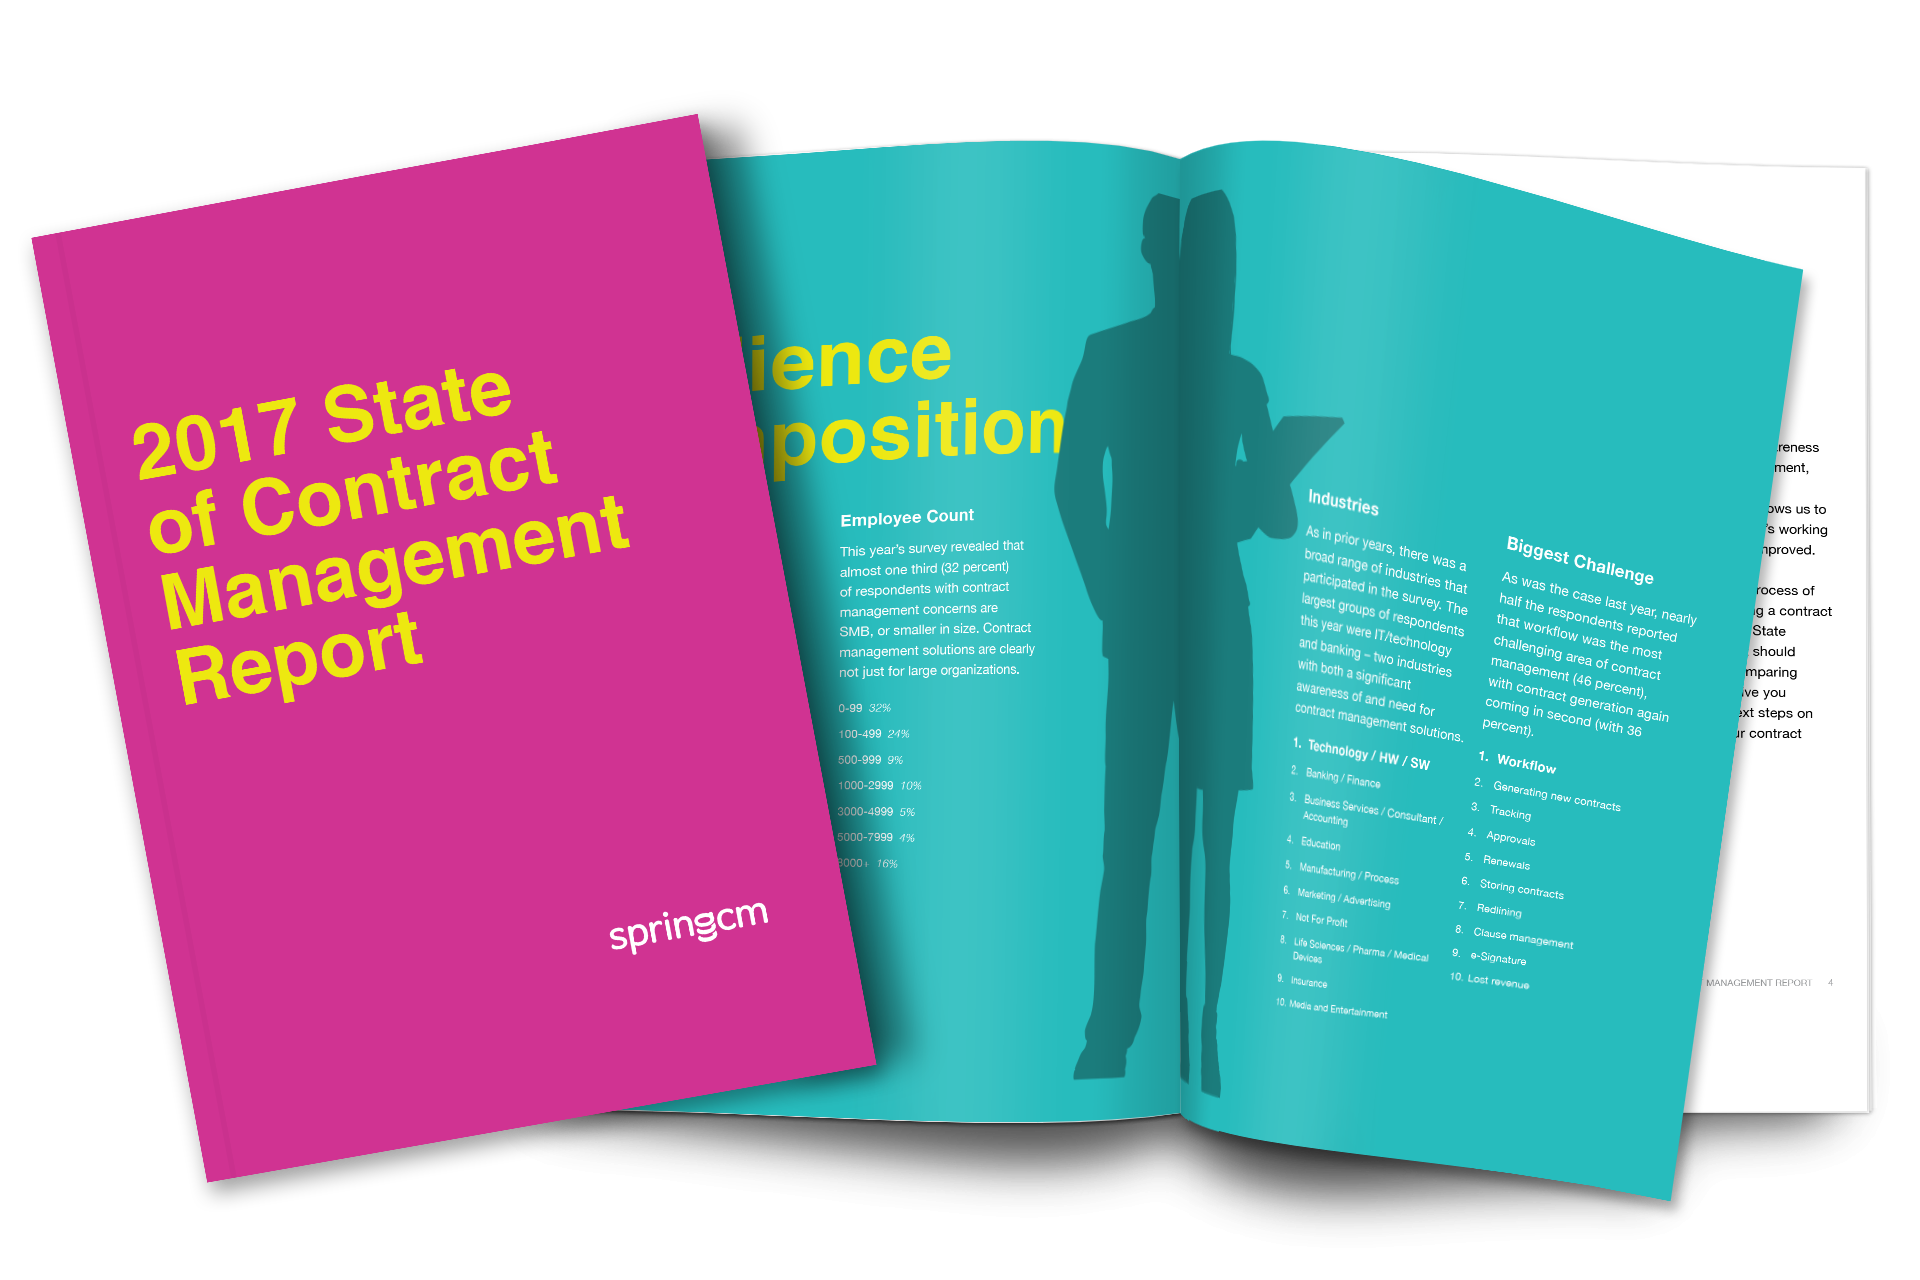 cover-2017-state-of-contract-managent-report-v2.png